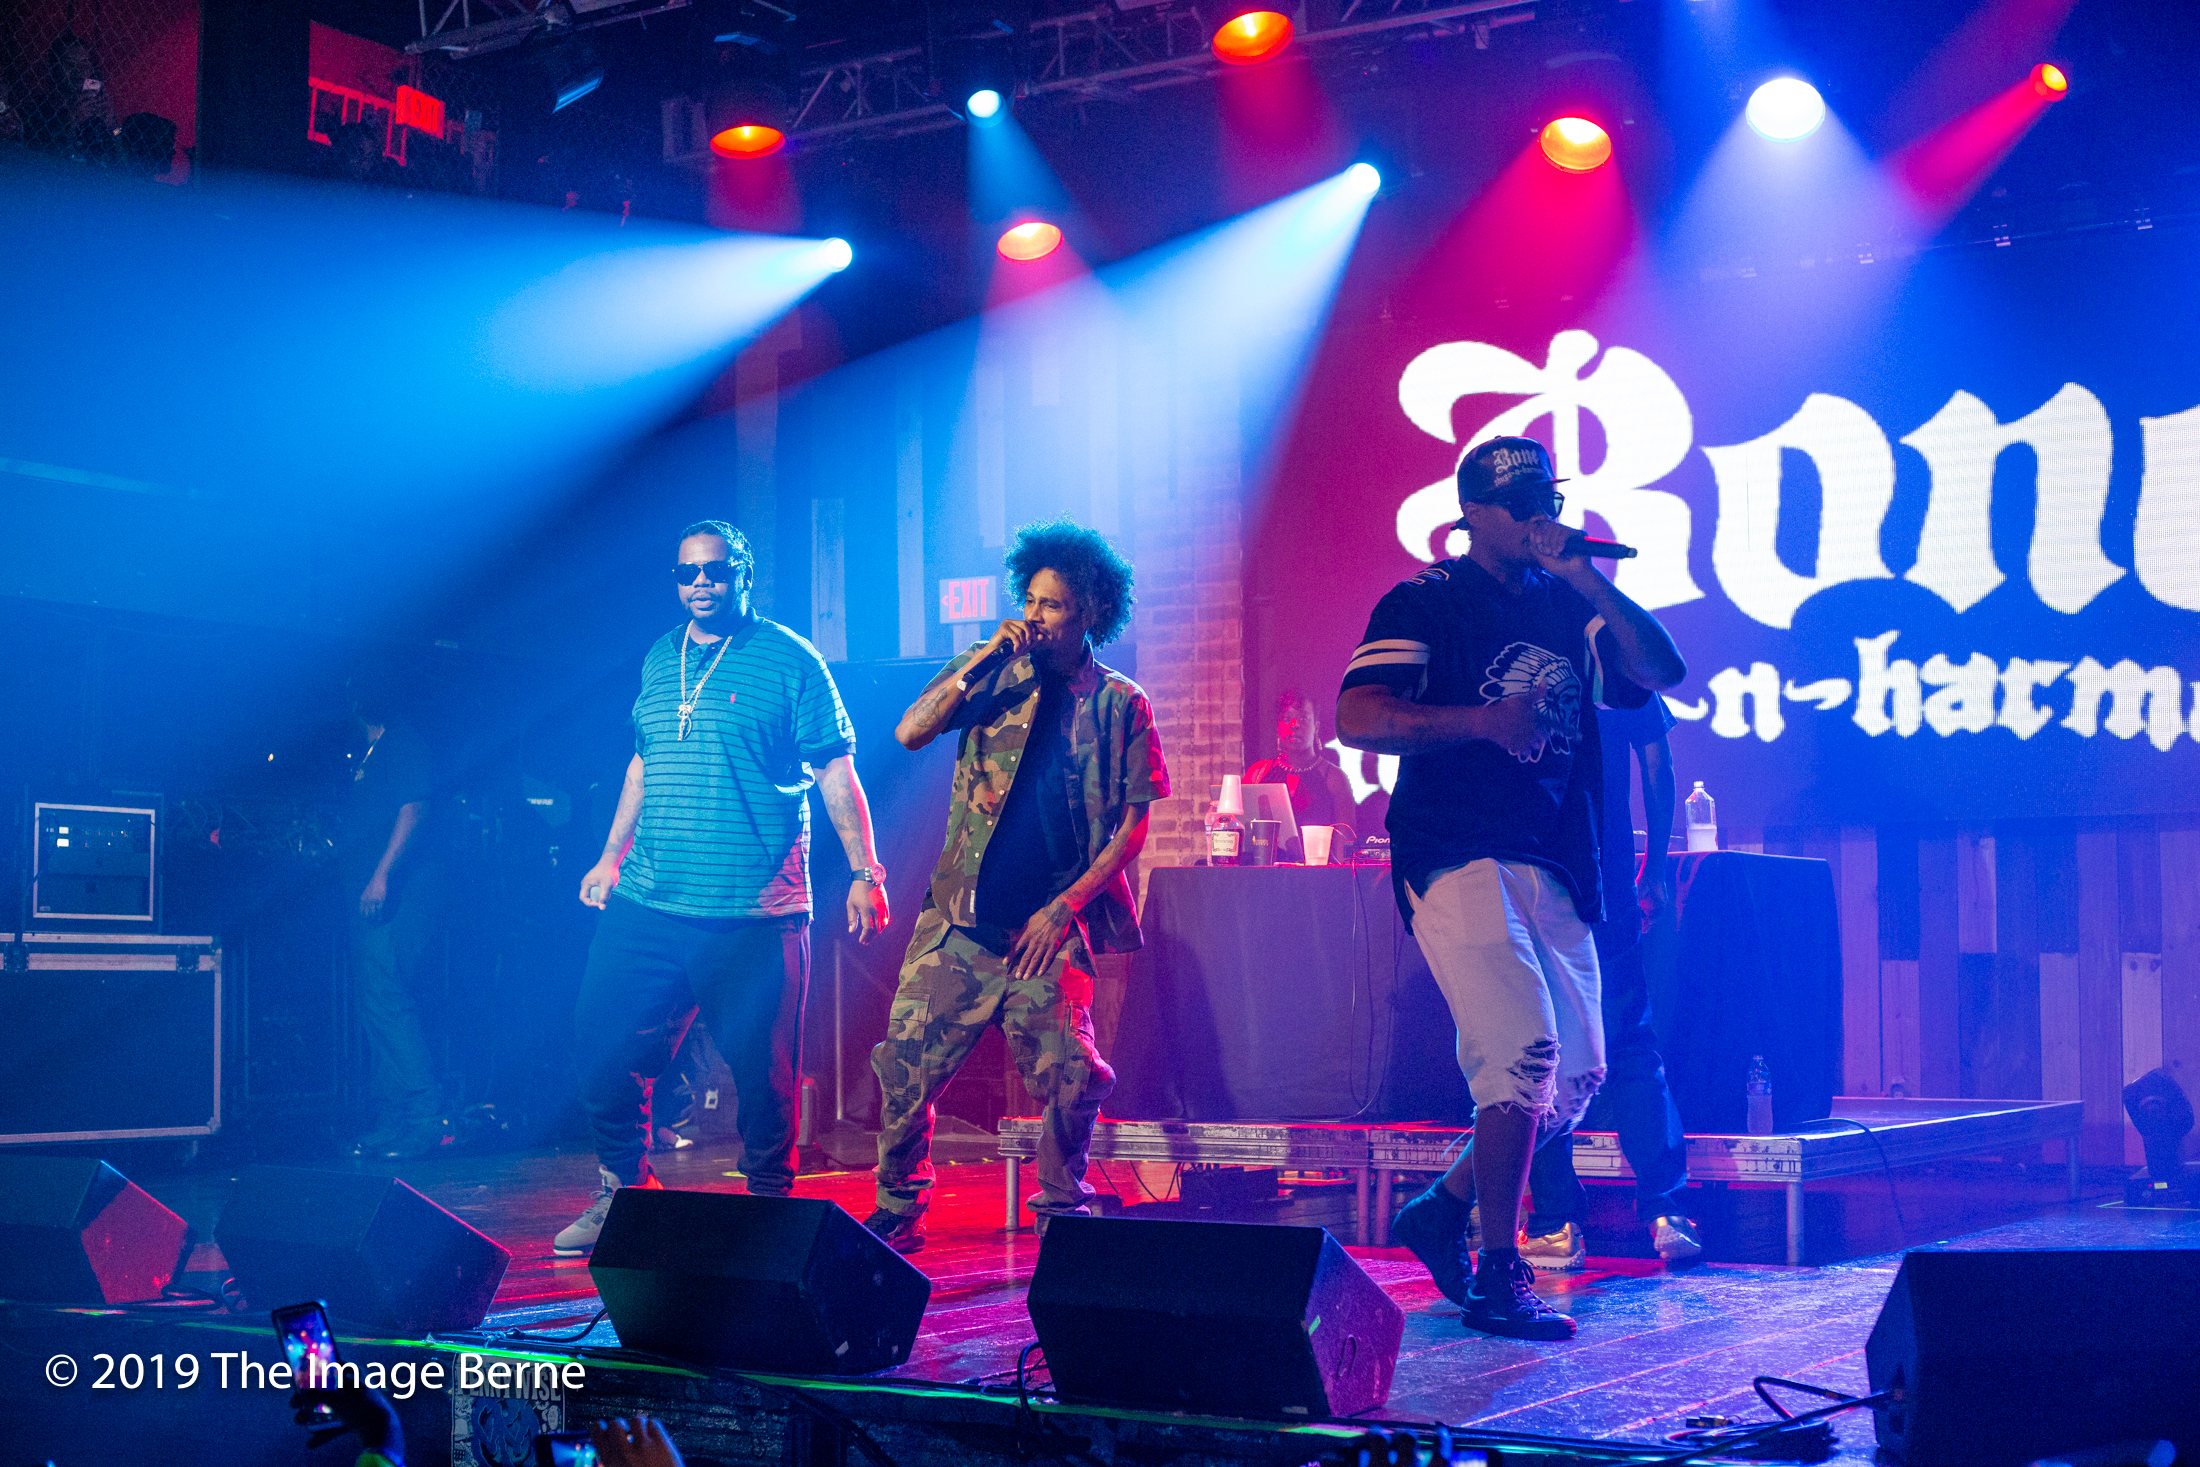 Krayzie Bone, Wish Bone, Flesh-N-Bone, Layzie Bone, and Bizzy Bone-008.jpg